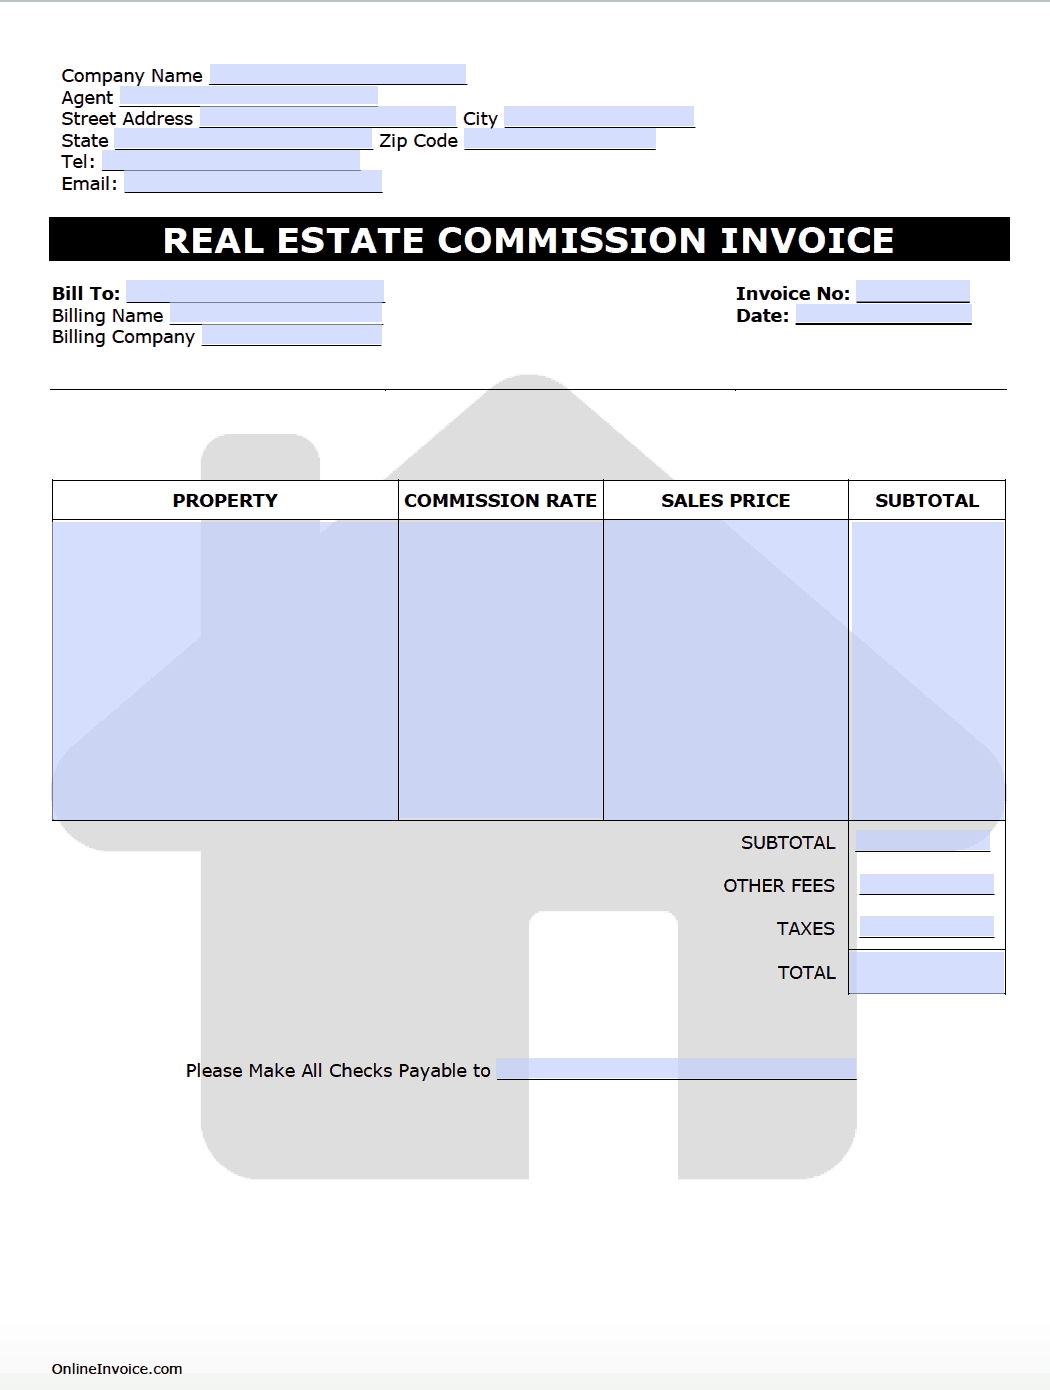 real estate commission invoice template onlineinvoice sales invoice for real estate agents